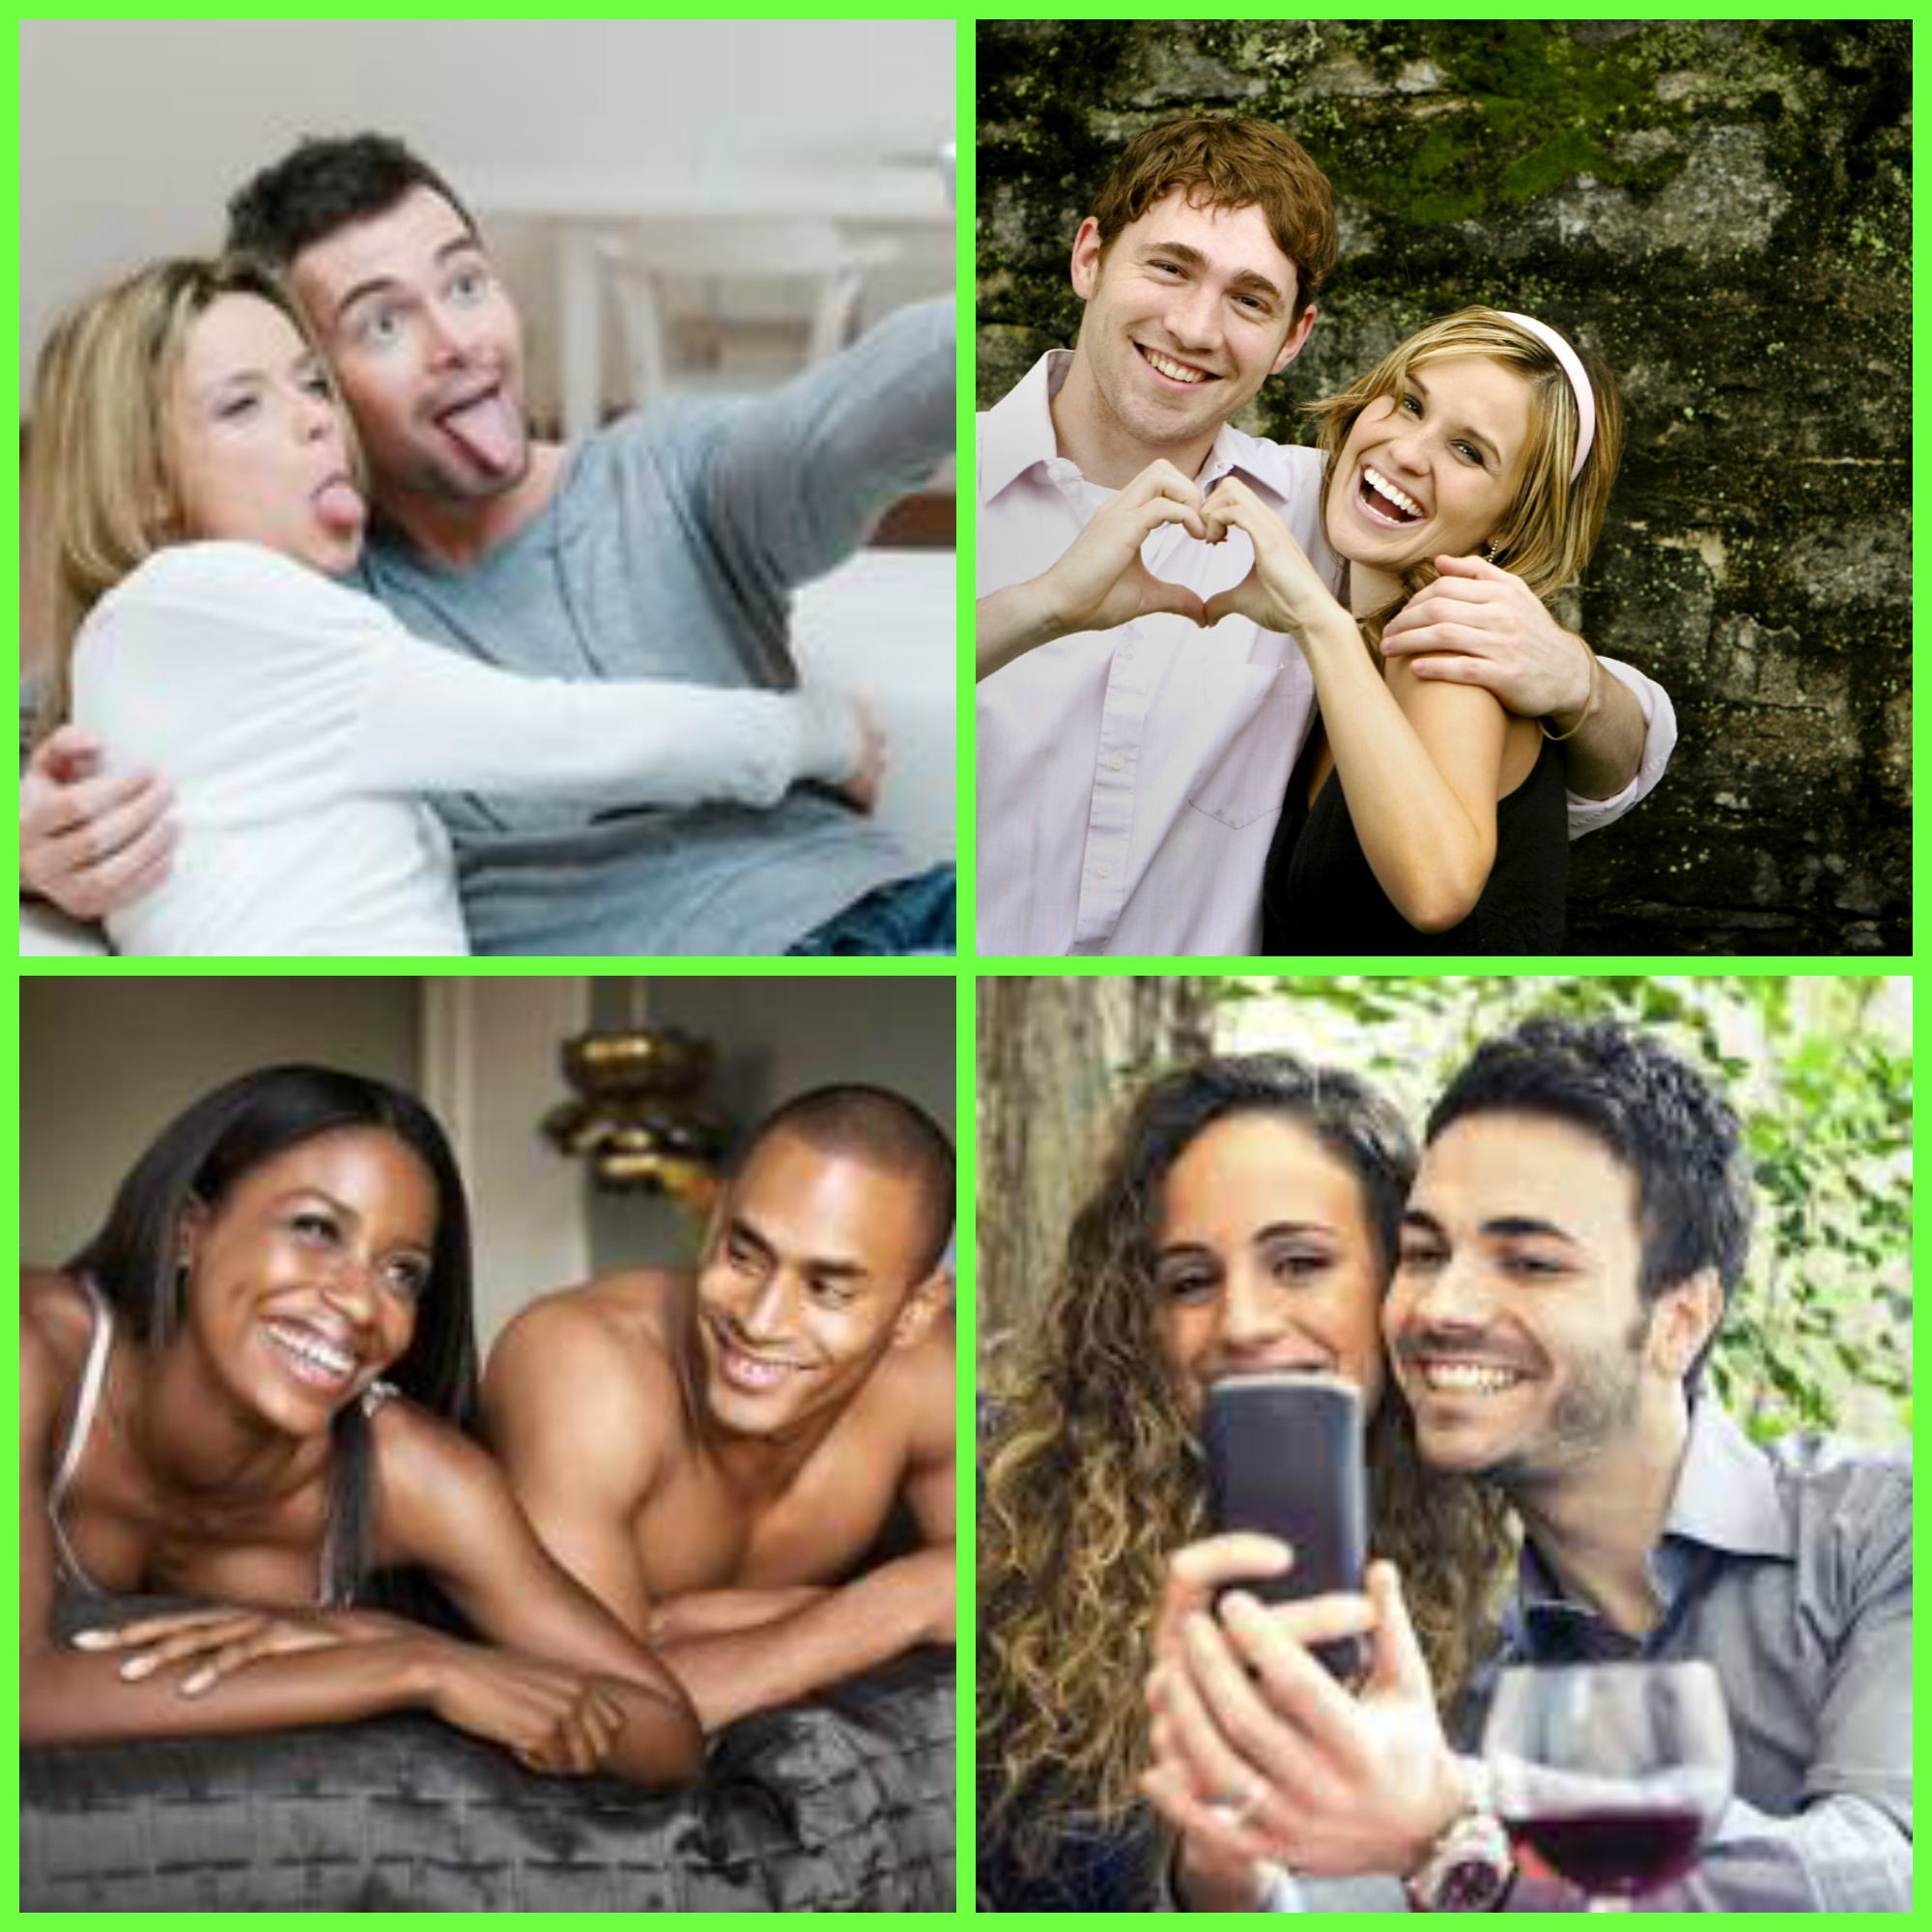 syracuse dating sites Meet singles in syracuse and around the world 100% free dating site visit our syracuse city guide for syracuse singles events, syracuse restaurants, and.